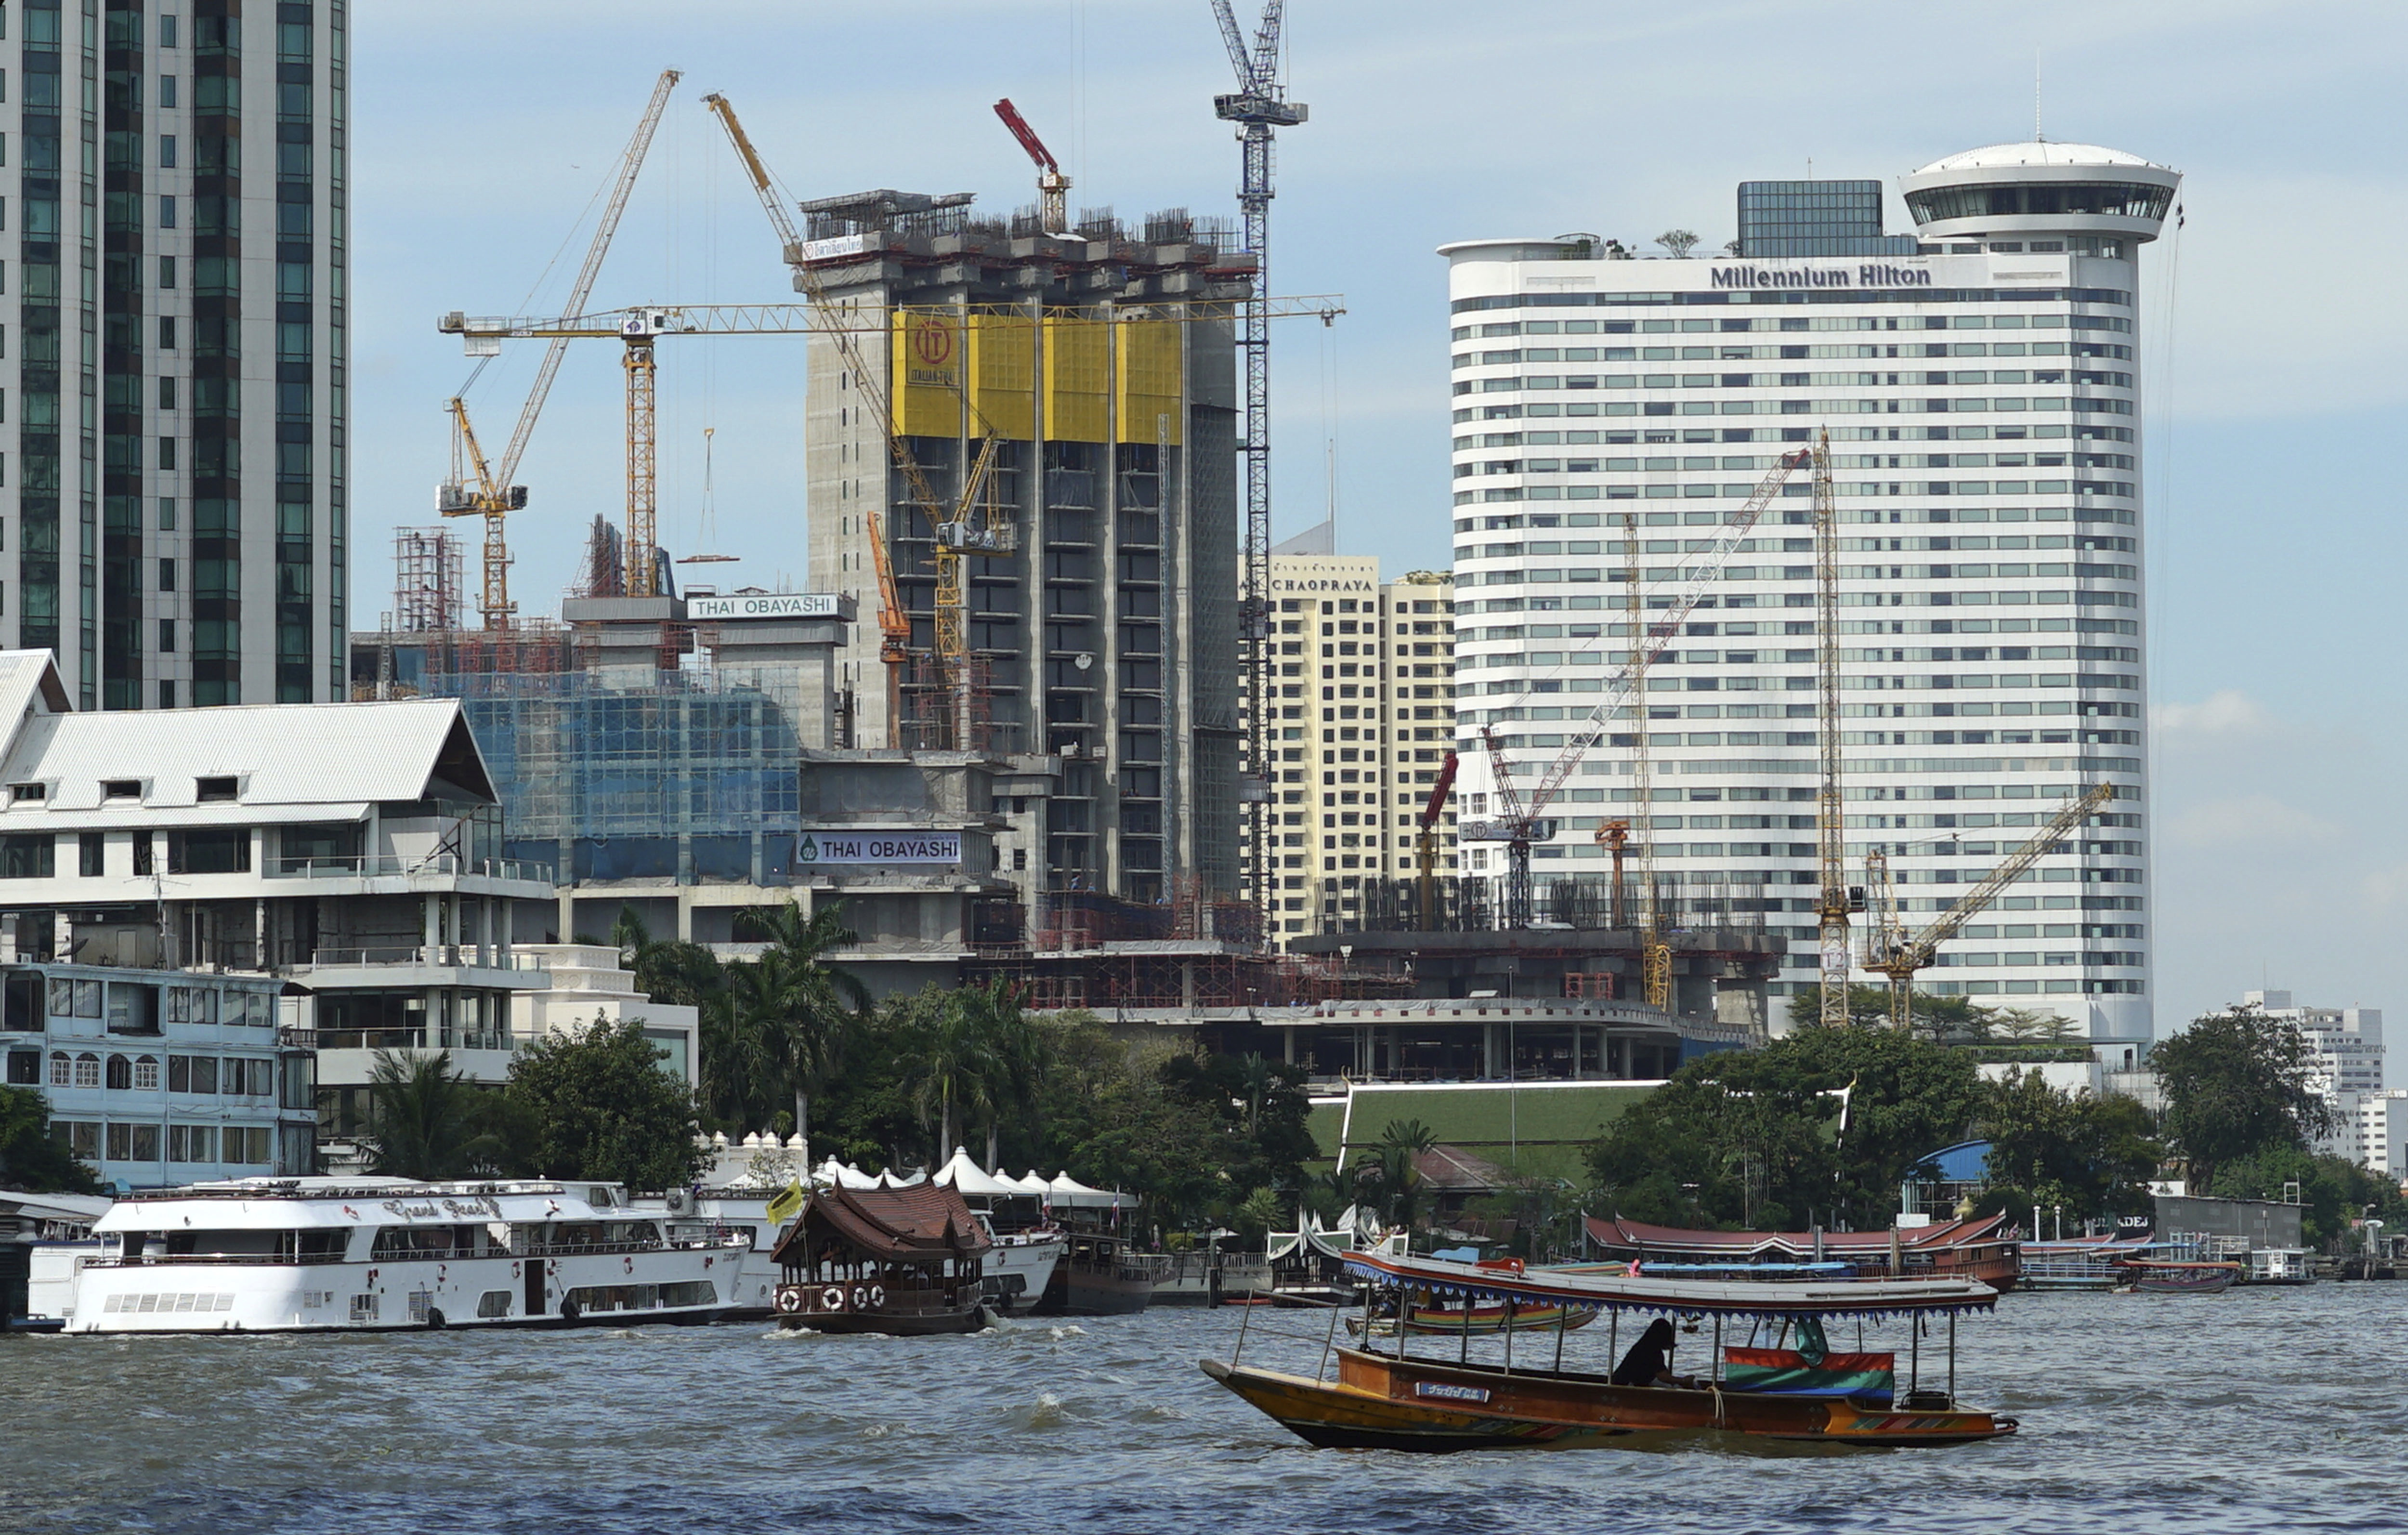 A riverboat taxi crosses the Chao Phraya River in front of massive construction projects Wednesday, Jan. 18, 2017, in Bangkok. A United Nations report says Asia's economic outlook for 2017 is strong despite slowing global growth due to sluggish international trade and investment. (AP Photo/Dake Kang)